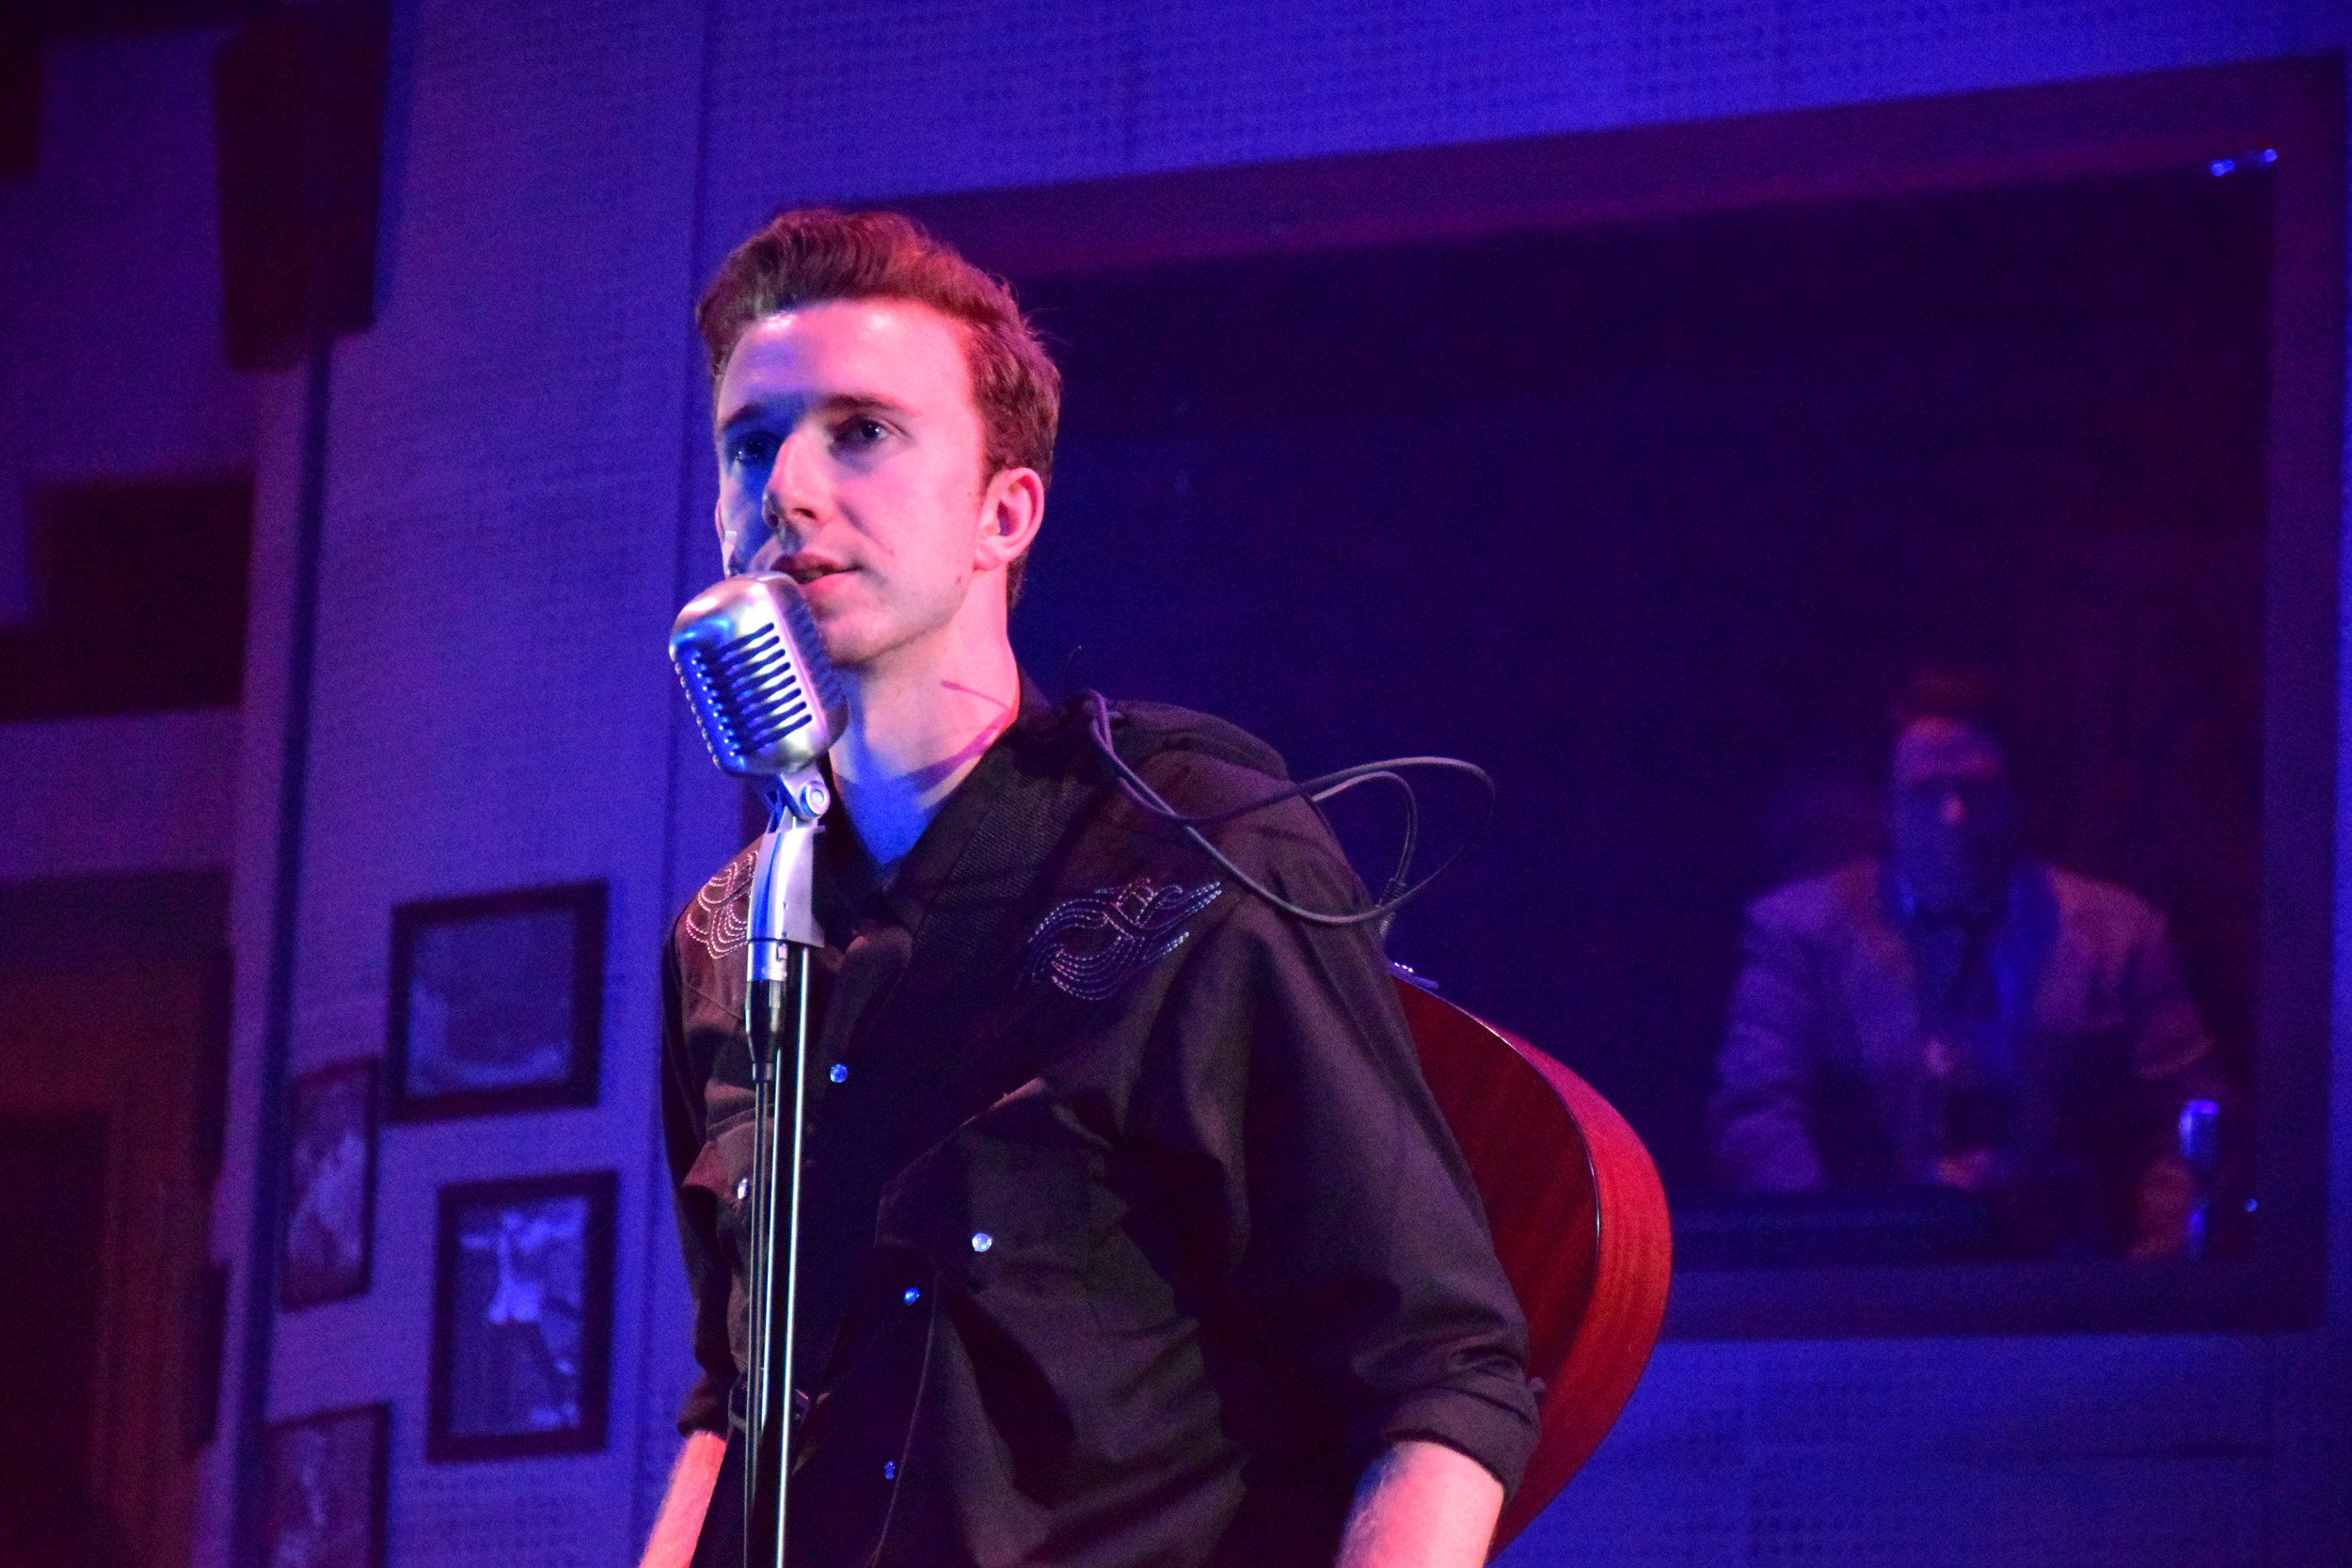 Nathan Snow as Johnny Cash